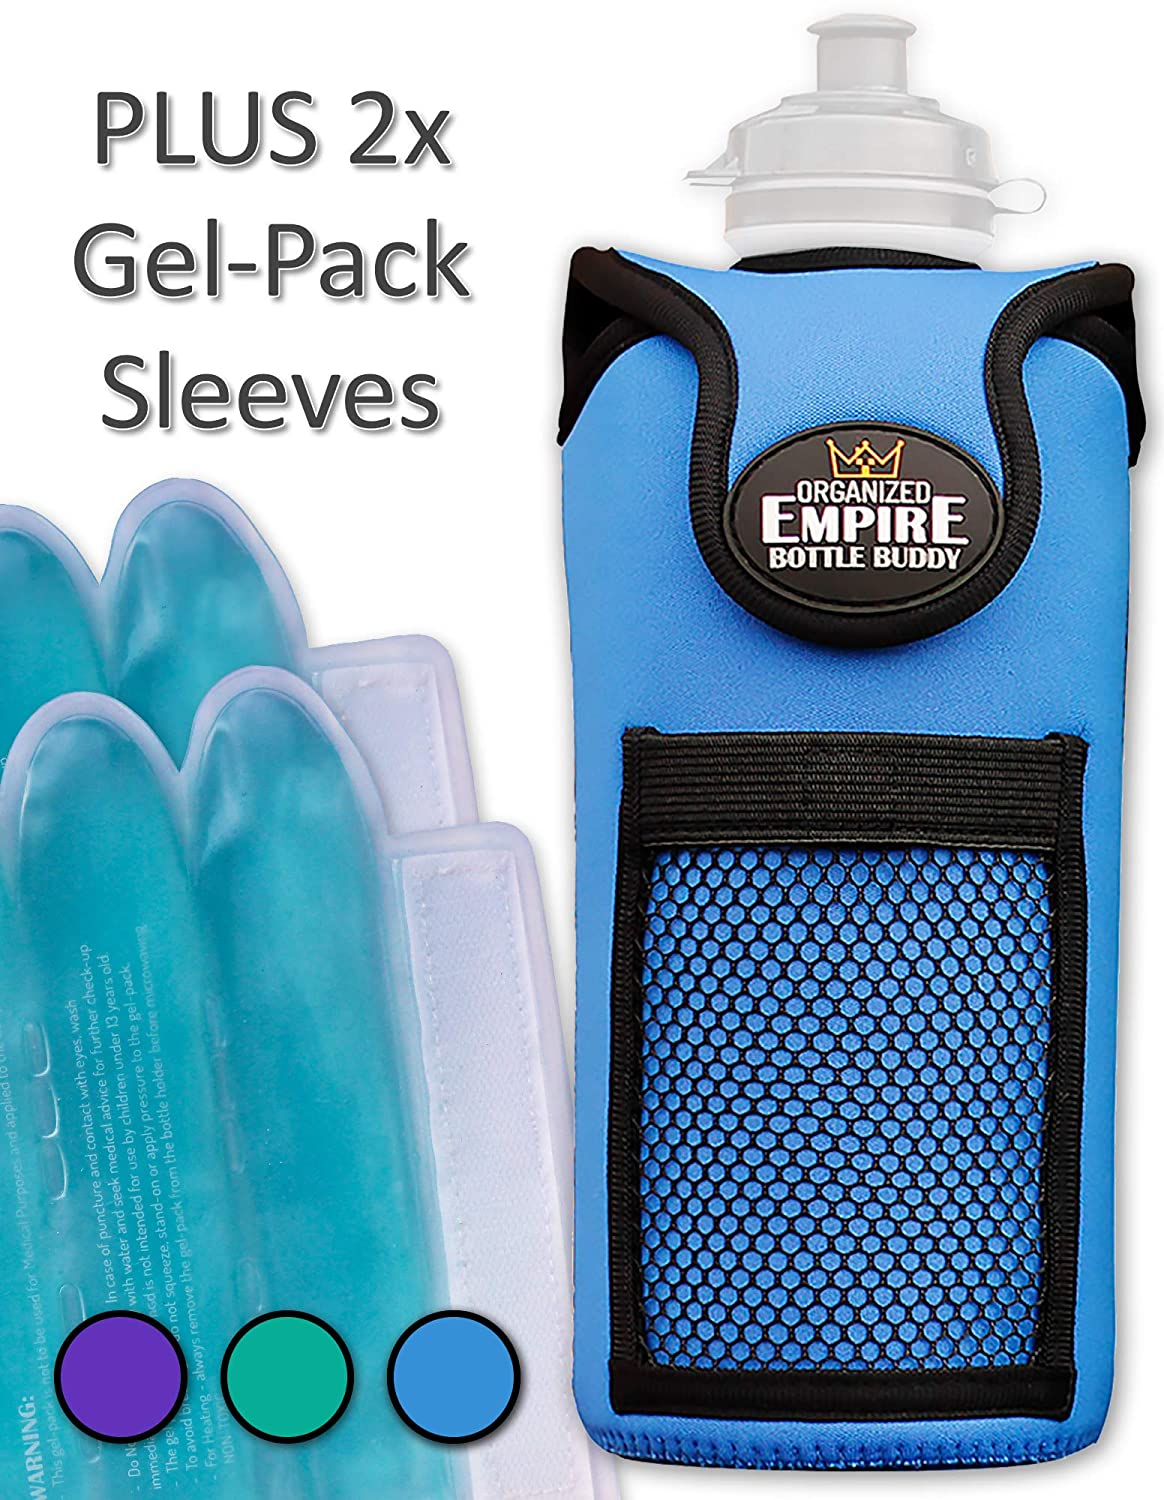 Organized Empire Insulated Water Bottle Holder with Shoulder Strap Sling, 2 Freezable / Microwave gel-pack sleeves for Hot / Cold Use as Breastmilk Cooler Bag, Portable Bottle Warmer or Drink Carrier